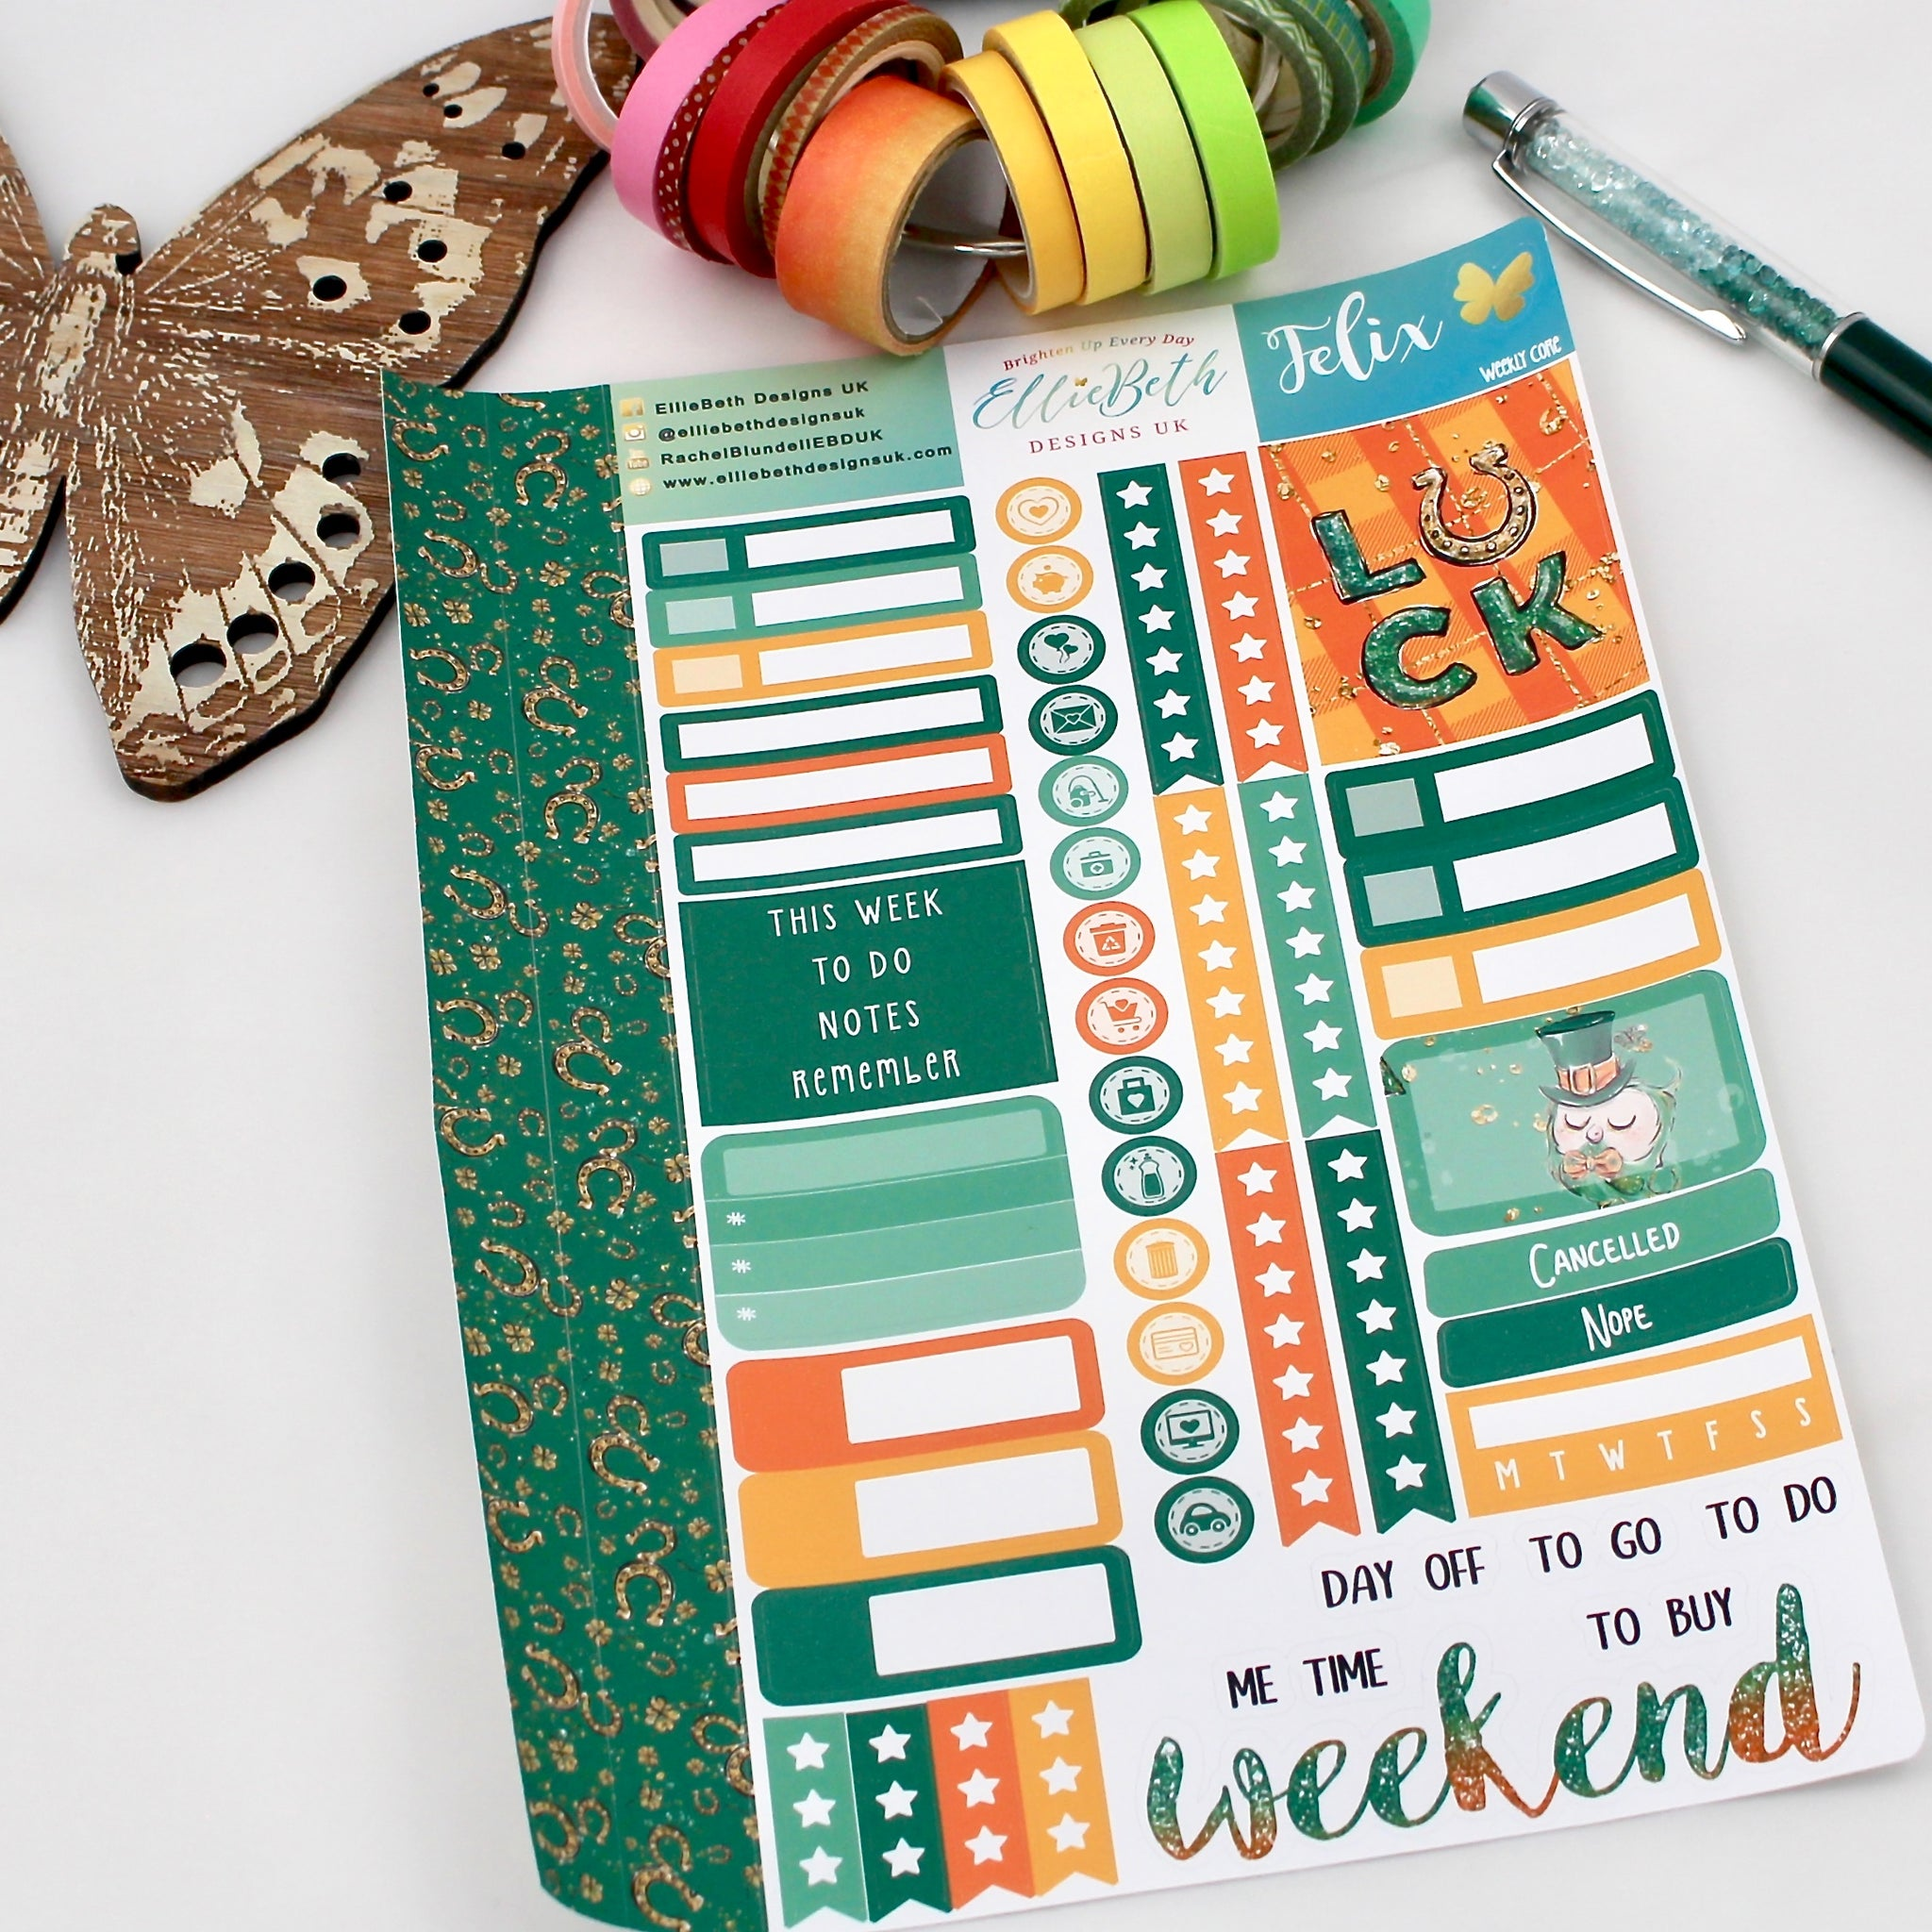 'Felix' - Weekly Core Sheet - A5 binder ready planner stickers